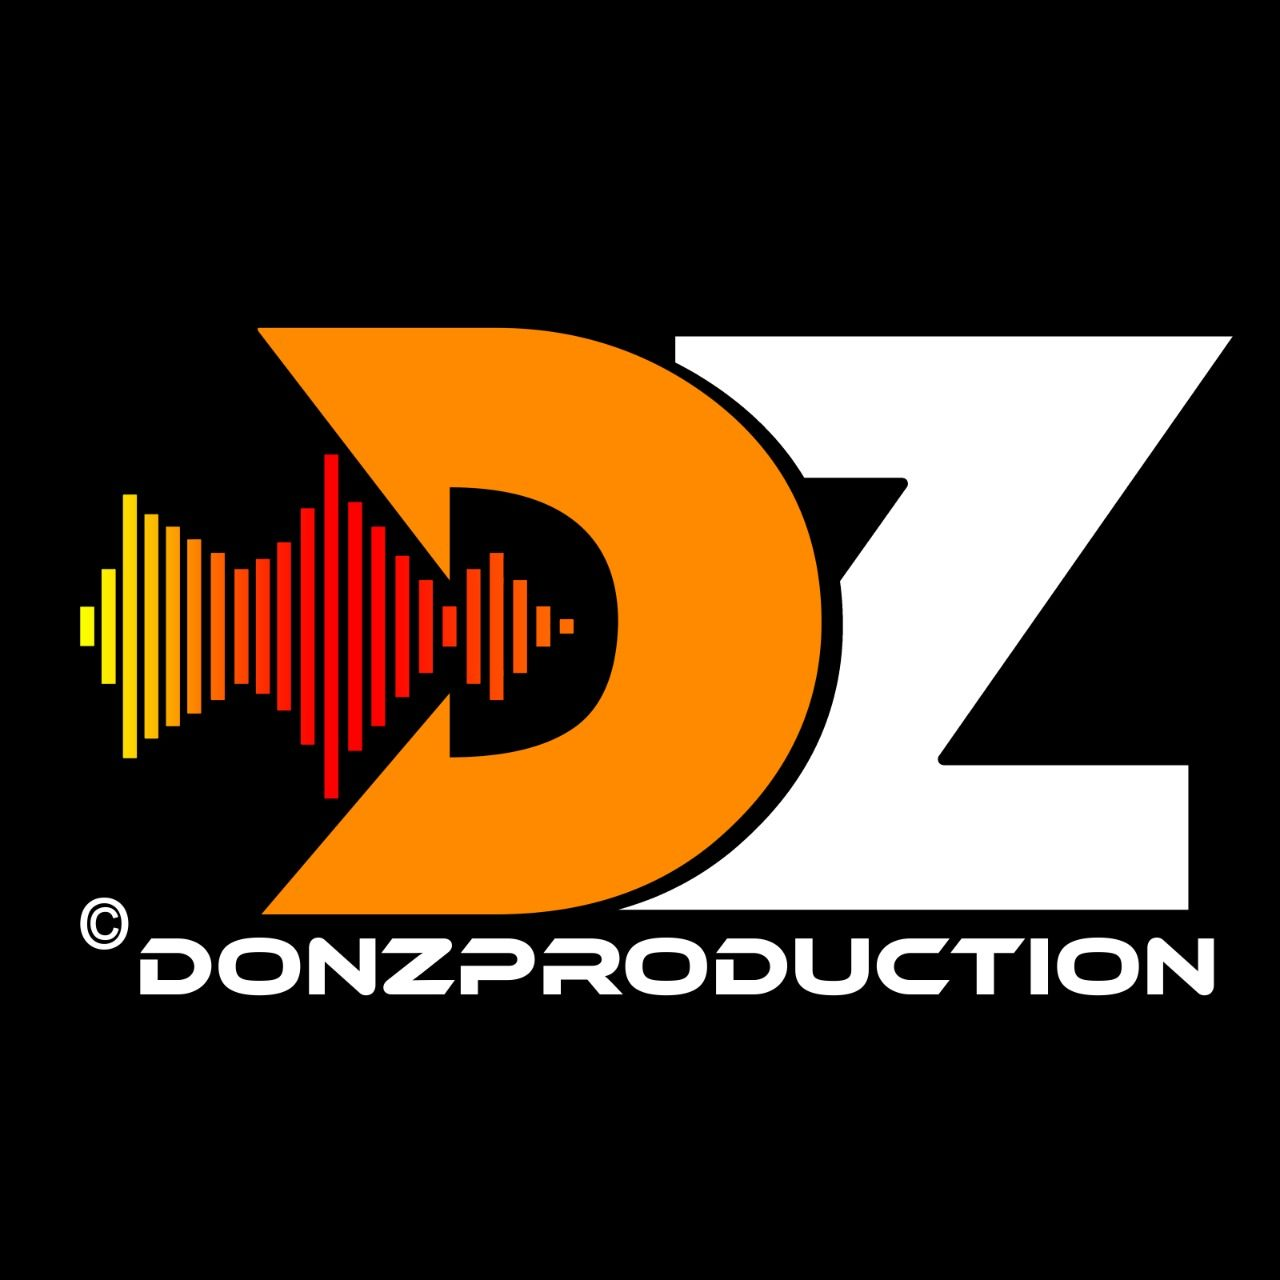 Donzproduction